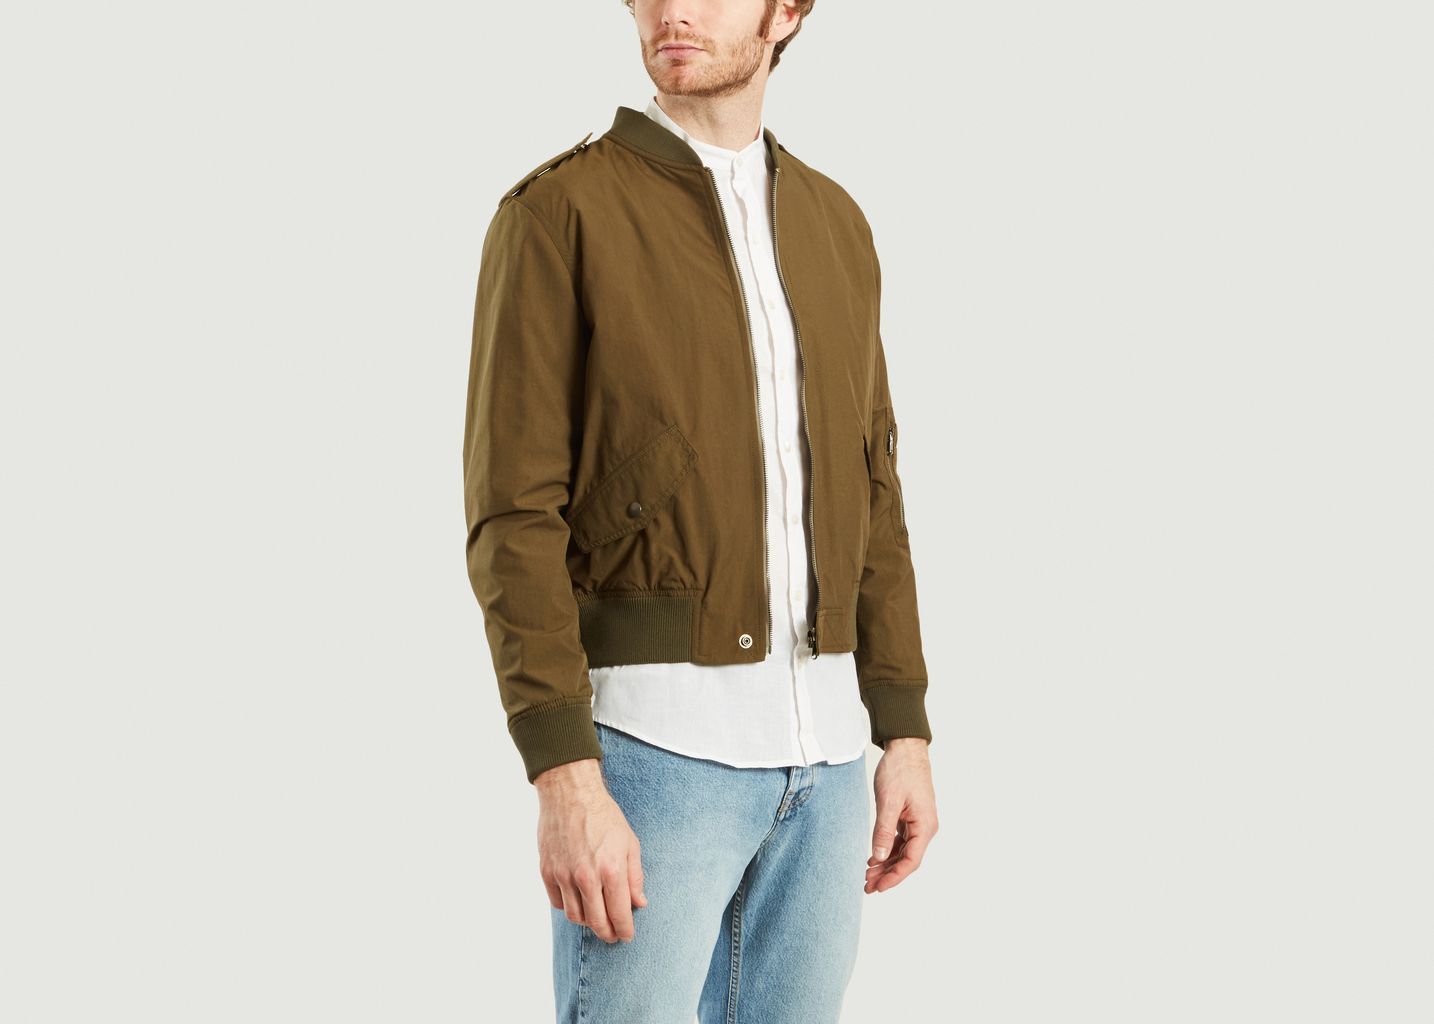 Bomber jacket - Editions M.R